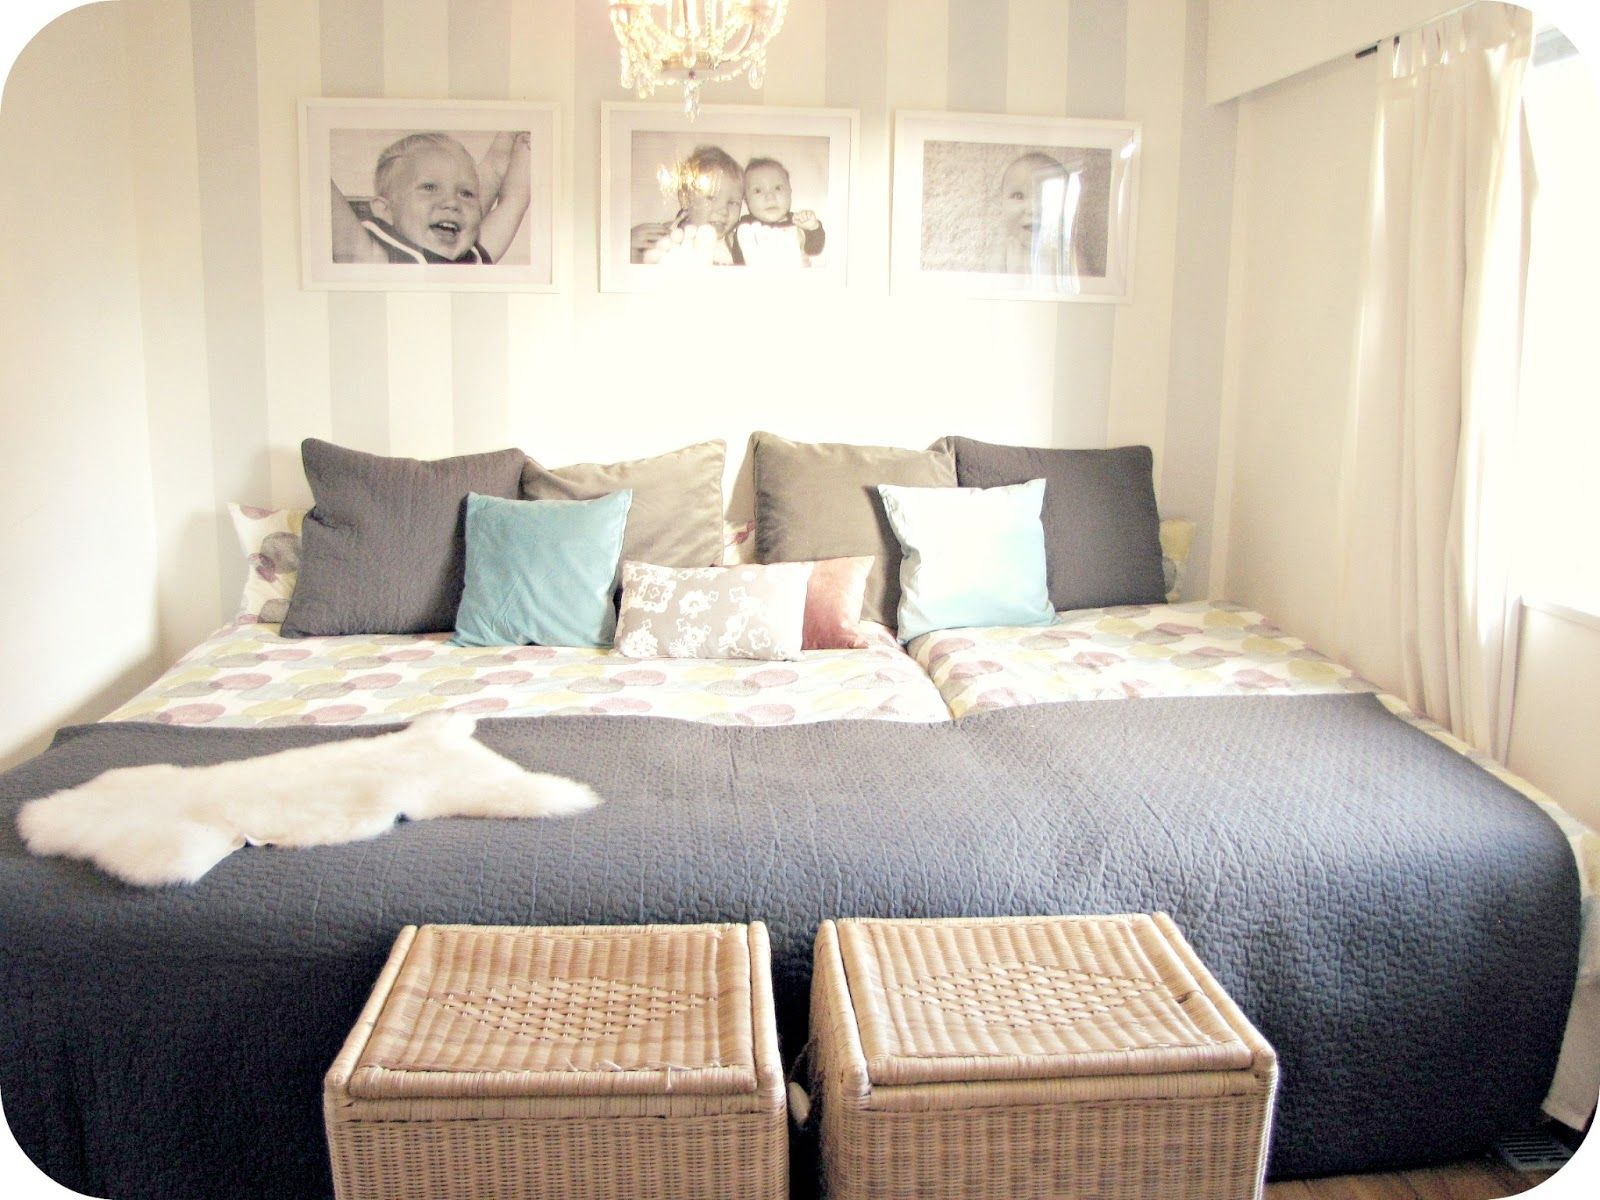 Pin by MT on Bed Room/ Closet Remodel Family bed